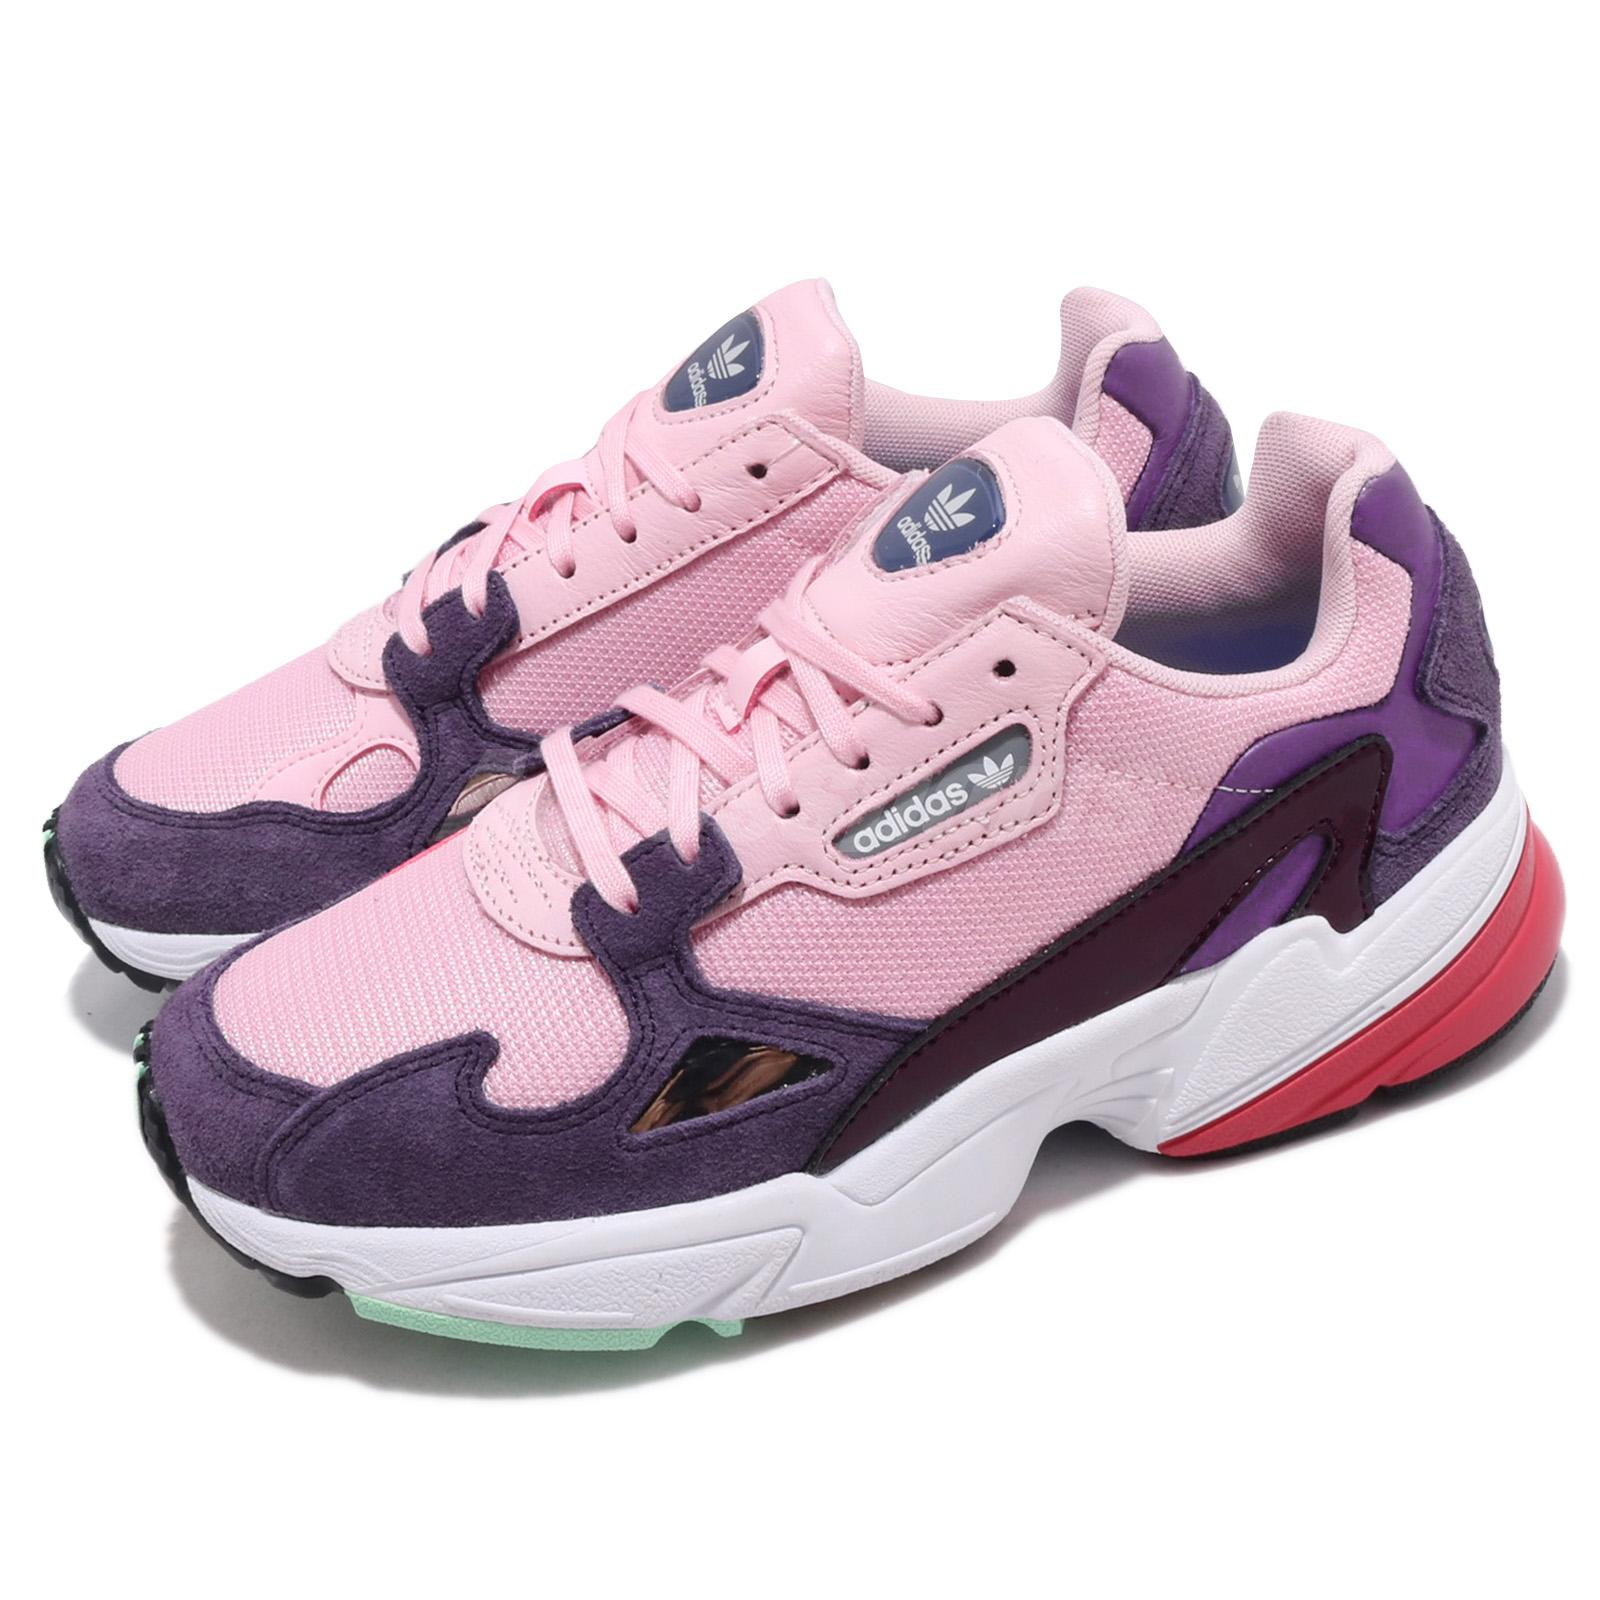 Details about adidas Originals Falcon W Pink Purple White Red Women  Lifestyle Shoes BD7825